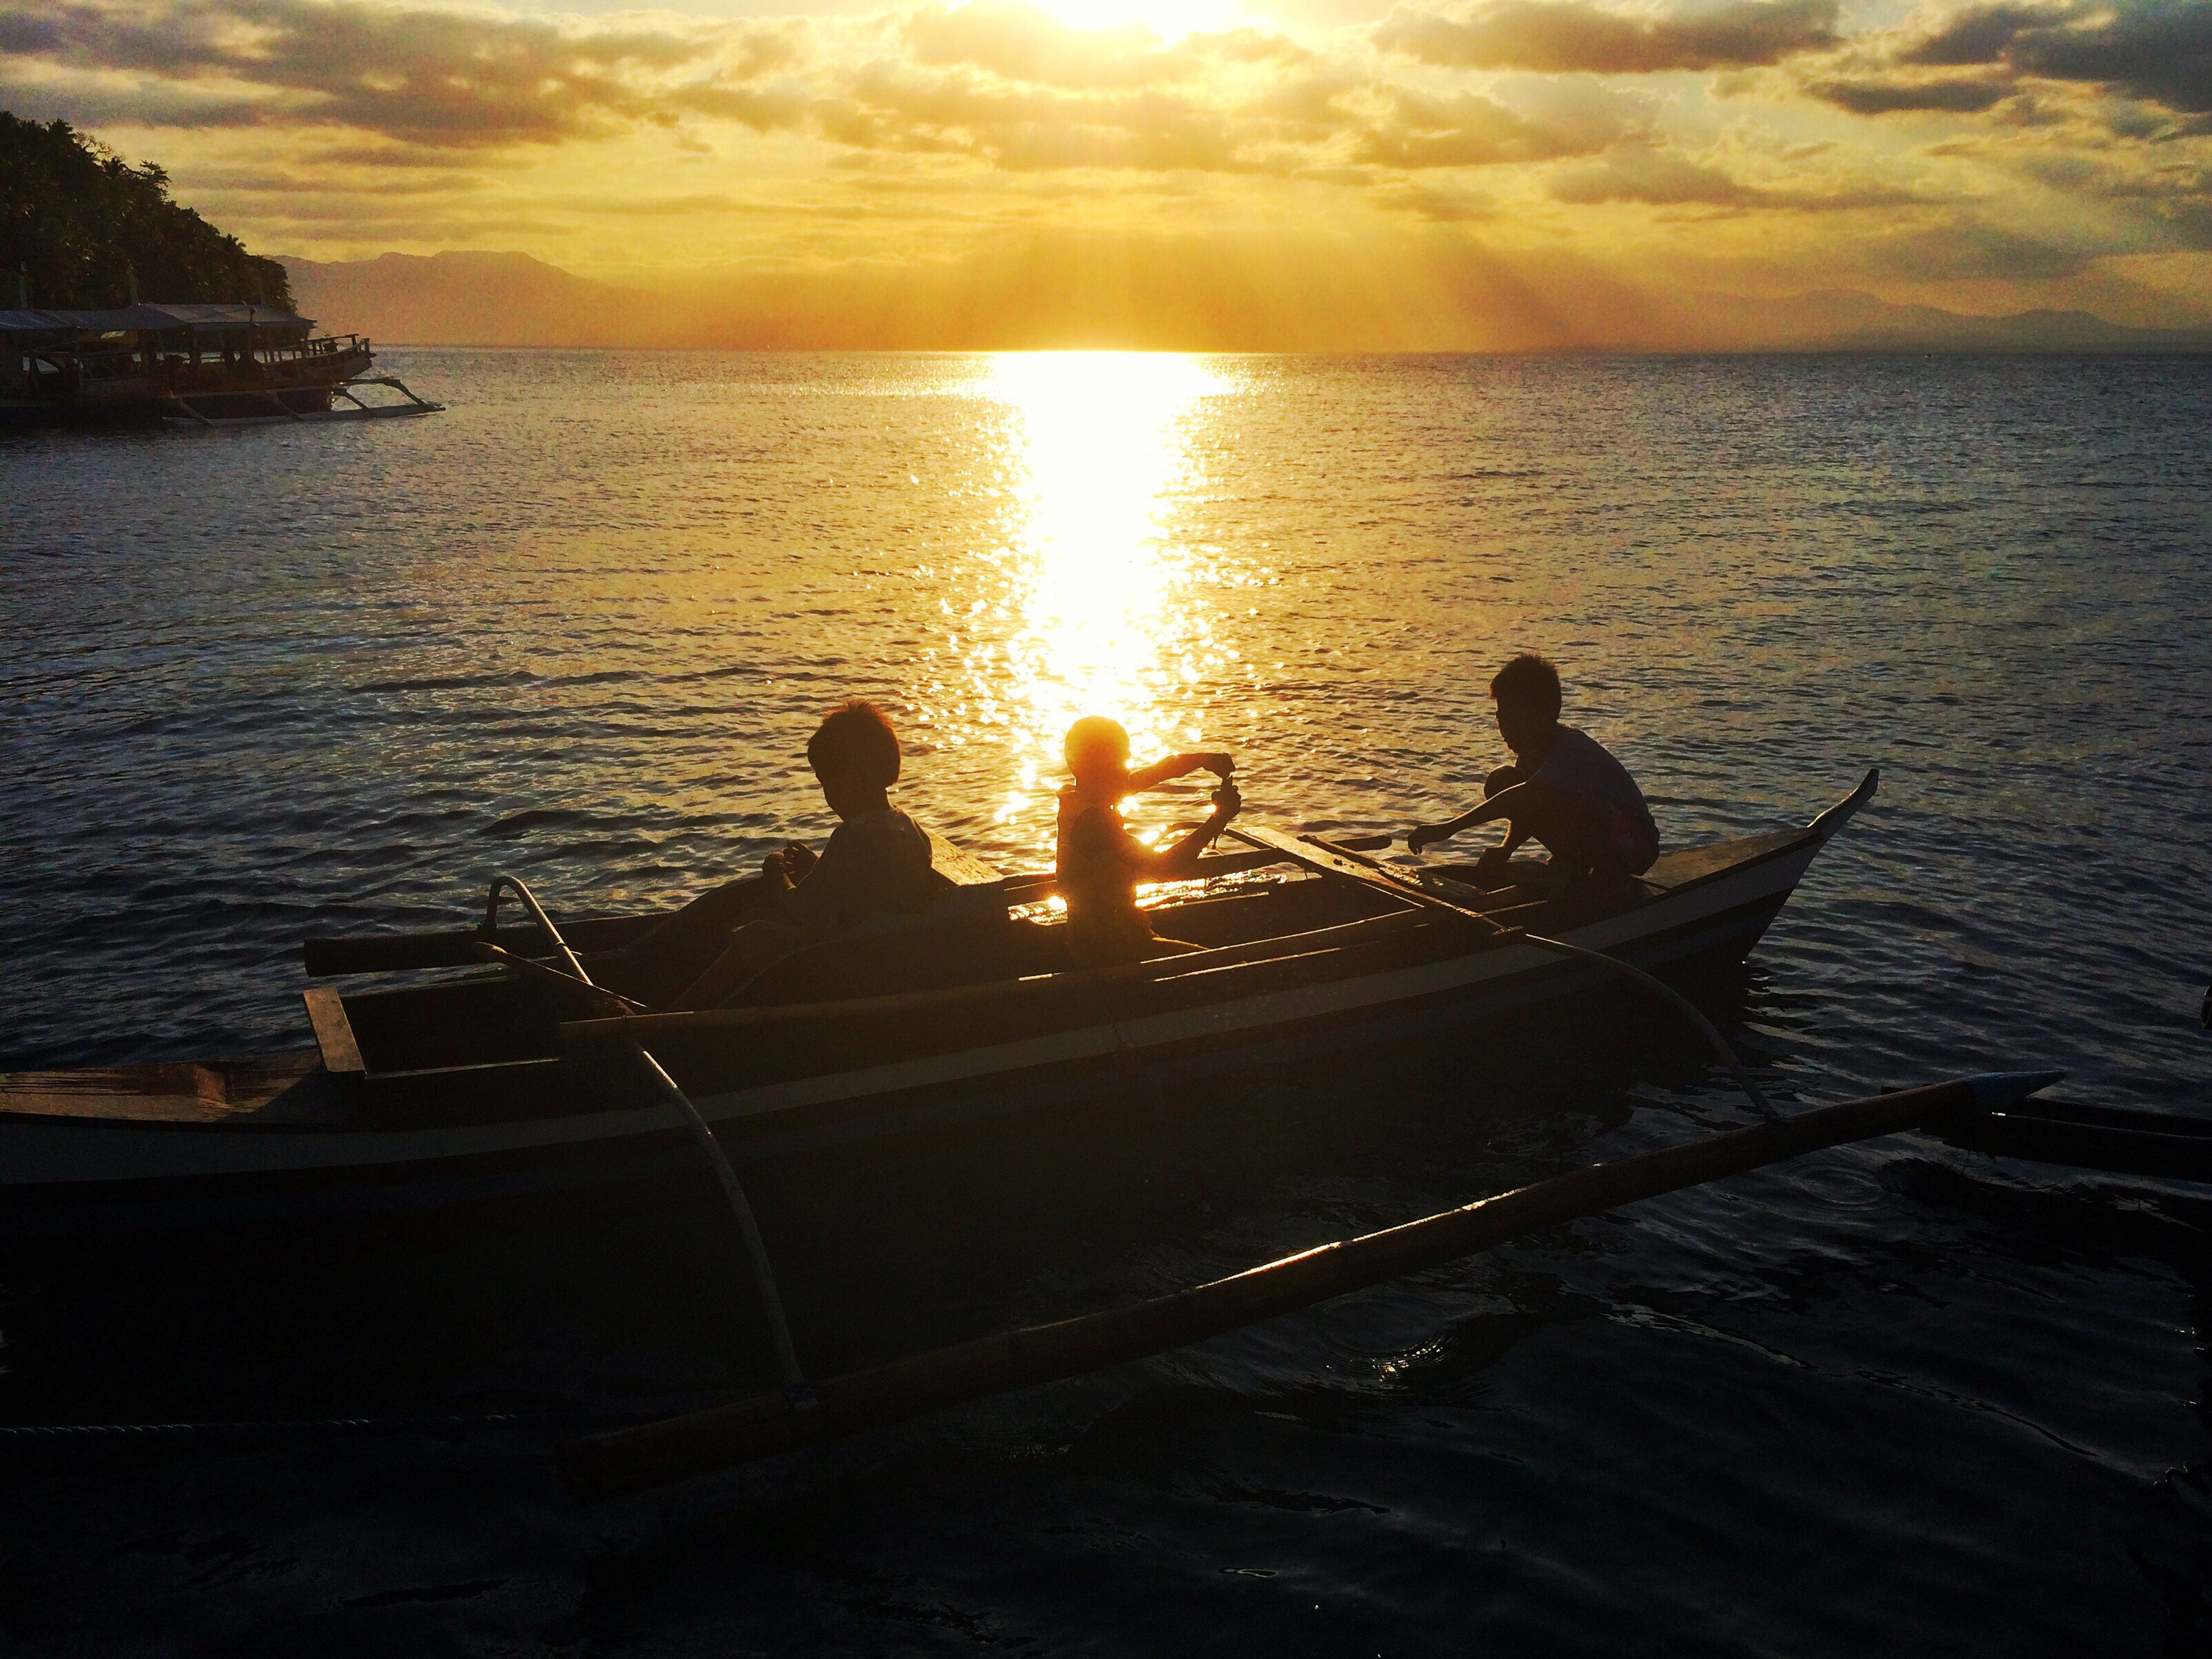 sunset, silhouette, nautical vessel, sea, sunlight, water, men, leisure activity, nature, beauty in nature, sky, real people, two people, outdoors, sun, vacations, cloud - sky, togetherness, friendship, adventure, only men, people, rowing, adult, day